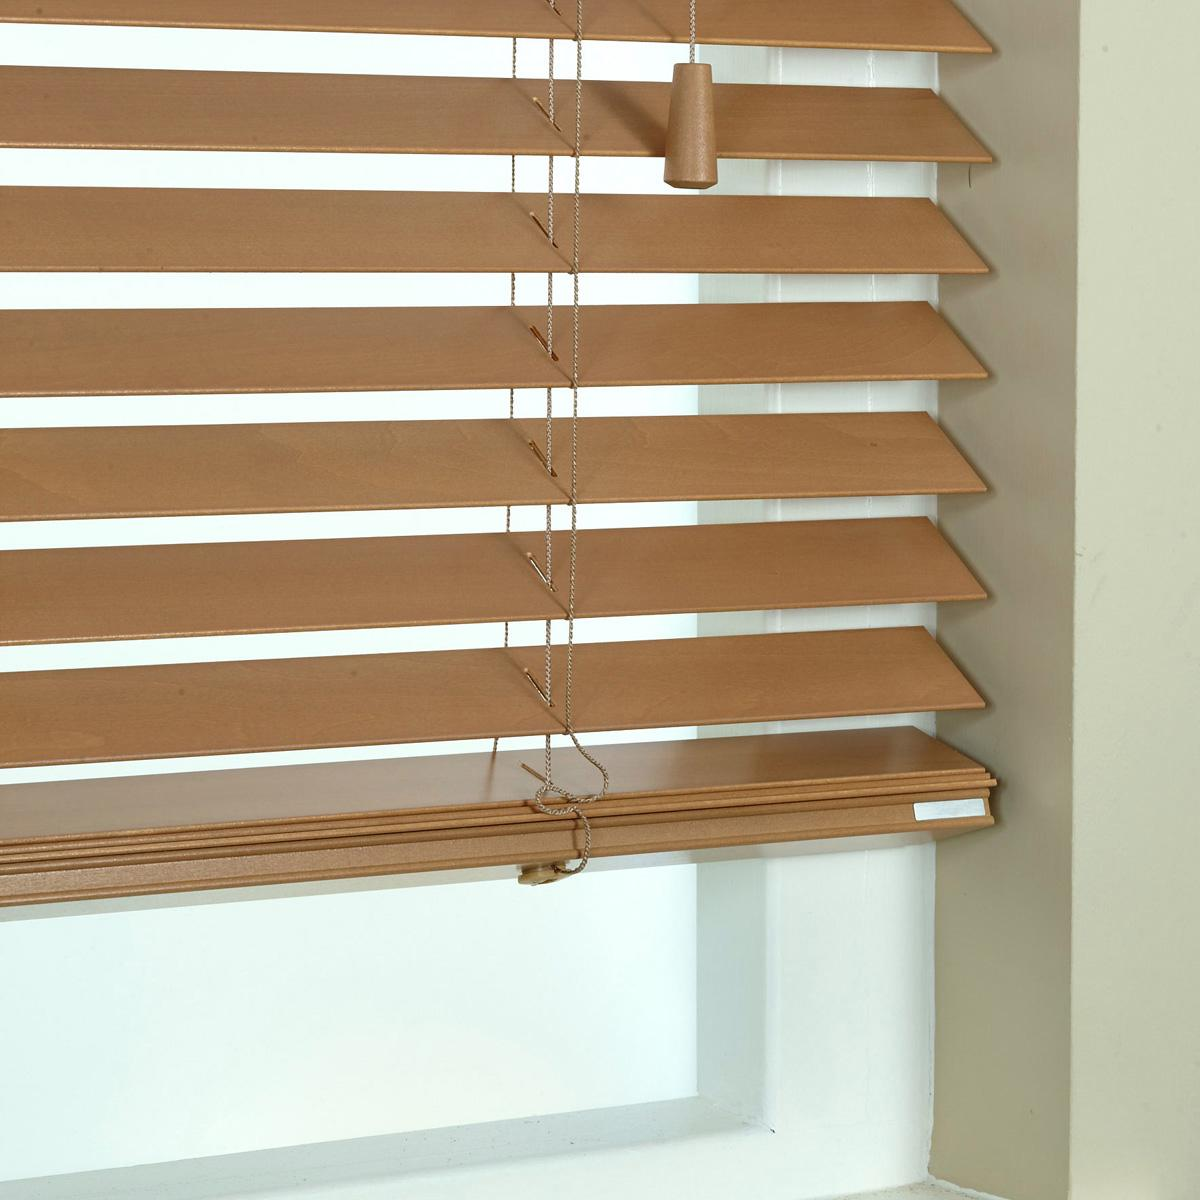 Superb img of 50mm Elementi Wood Venetian Blind Beech with #714E2C color and 1200x1200 pixels